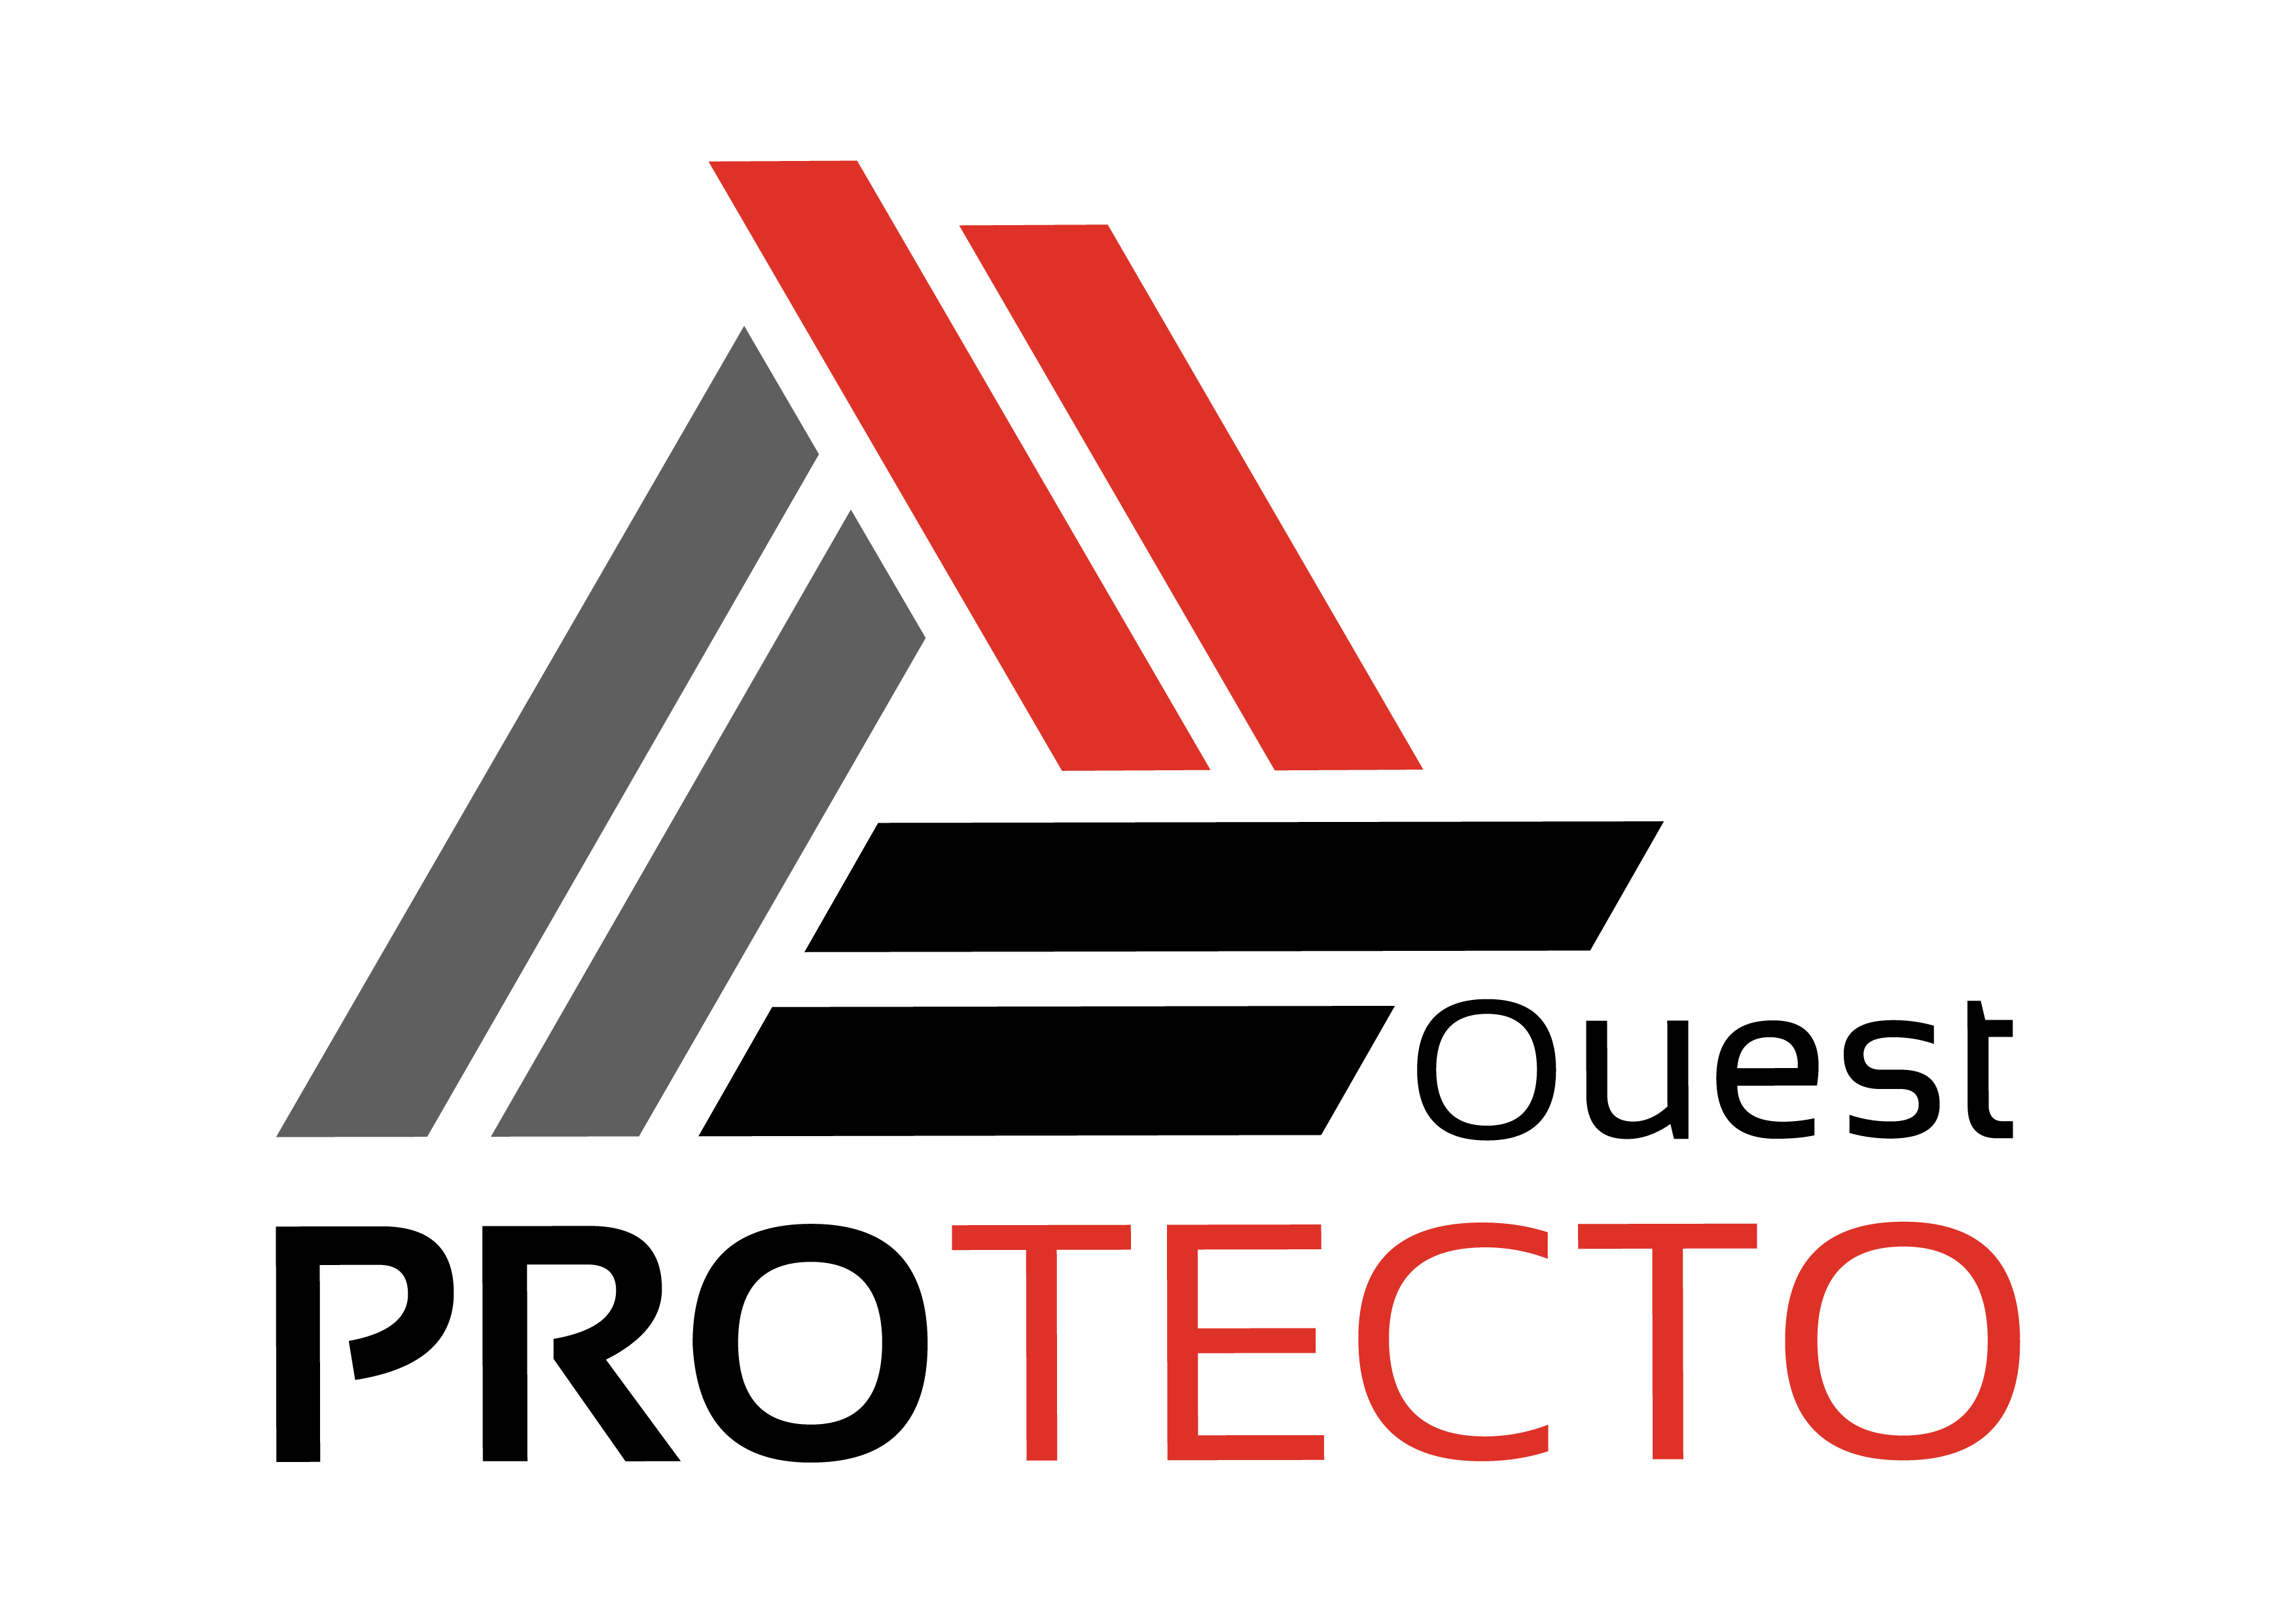 PROTECTO OUEST